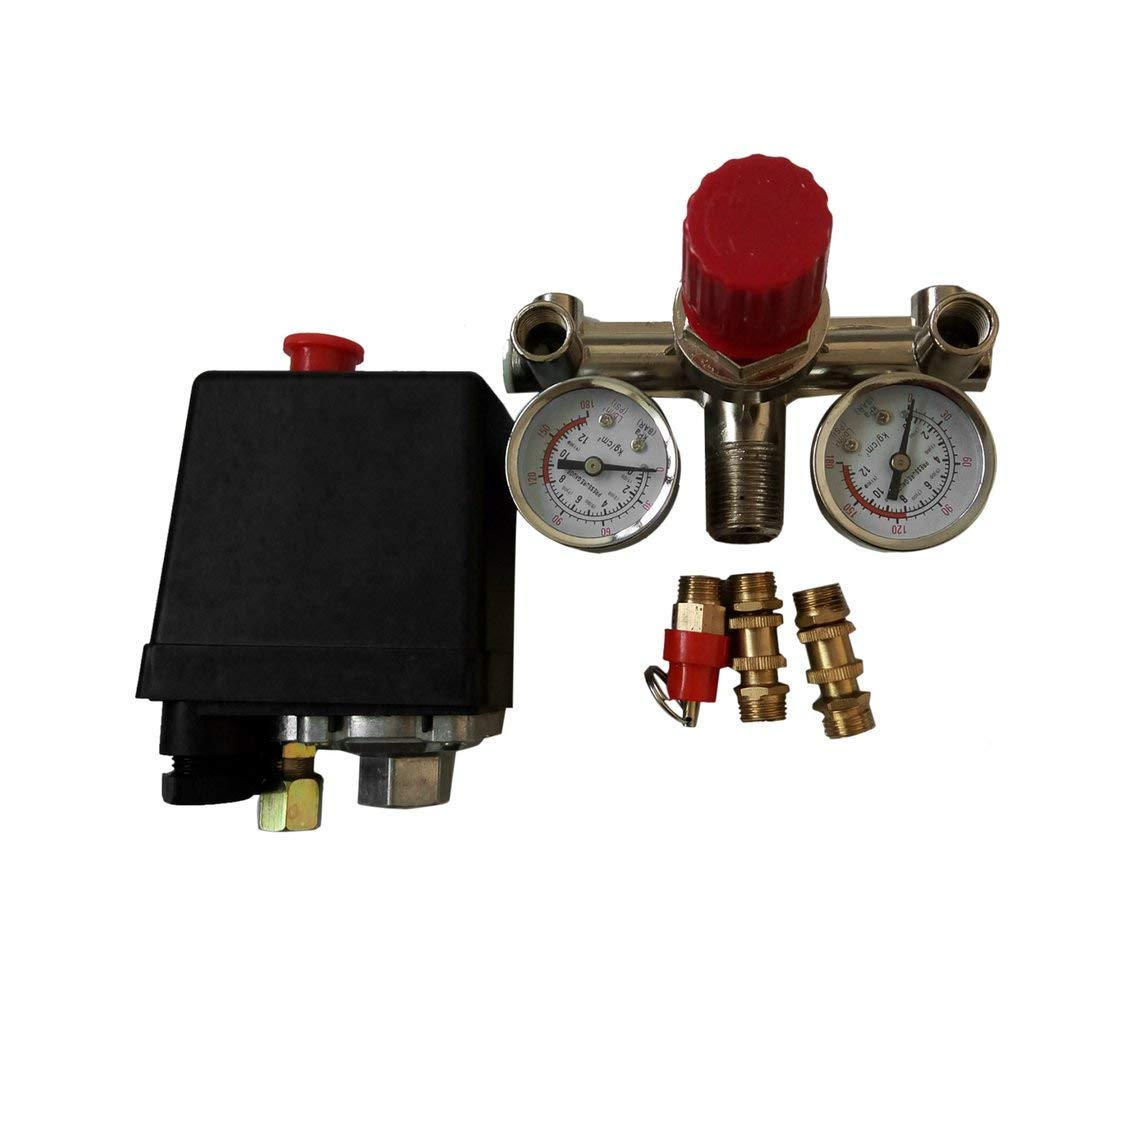 Bundle of six switches VXA7180-6 Vixen Horns 150-180 PSI Air Pressure Switch Tank Mount Type 1//4 NPT 12V//24V for Train//Air Horn